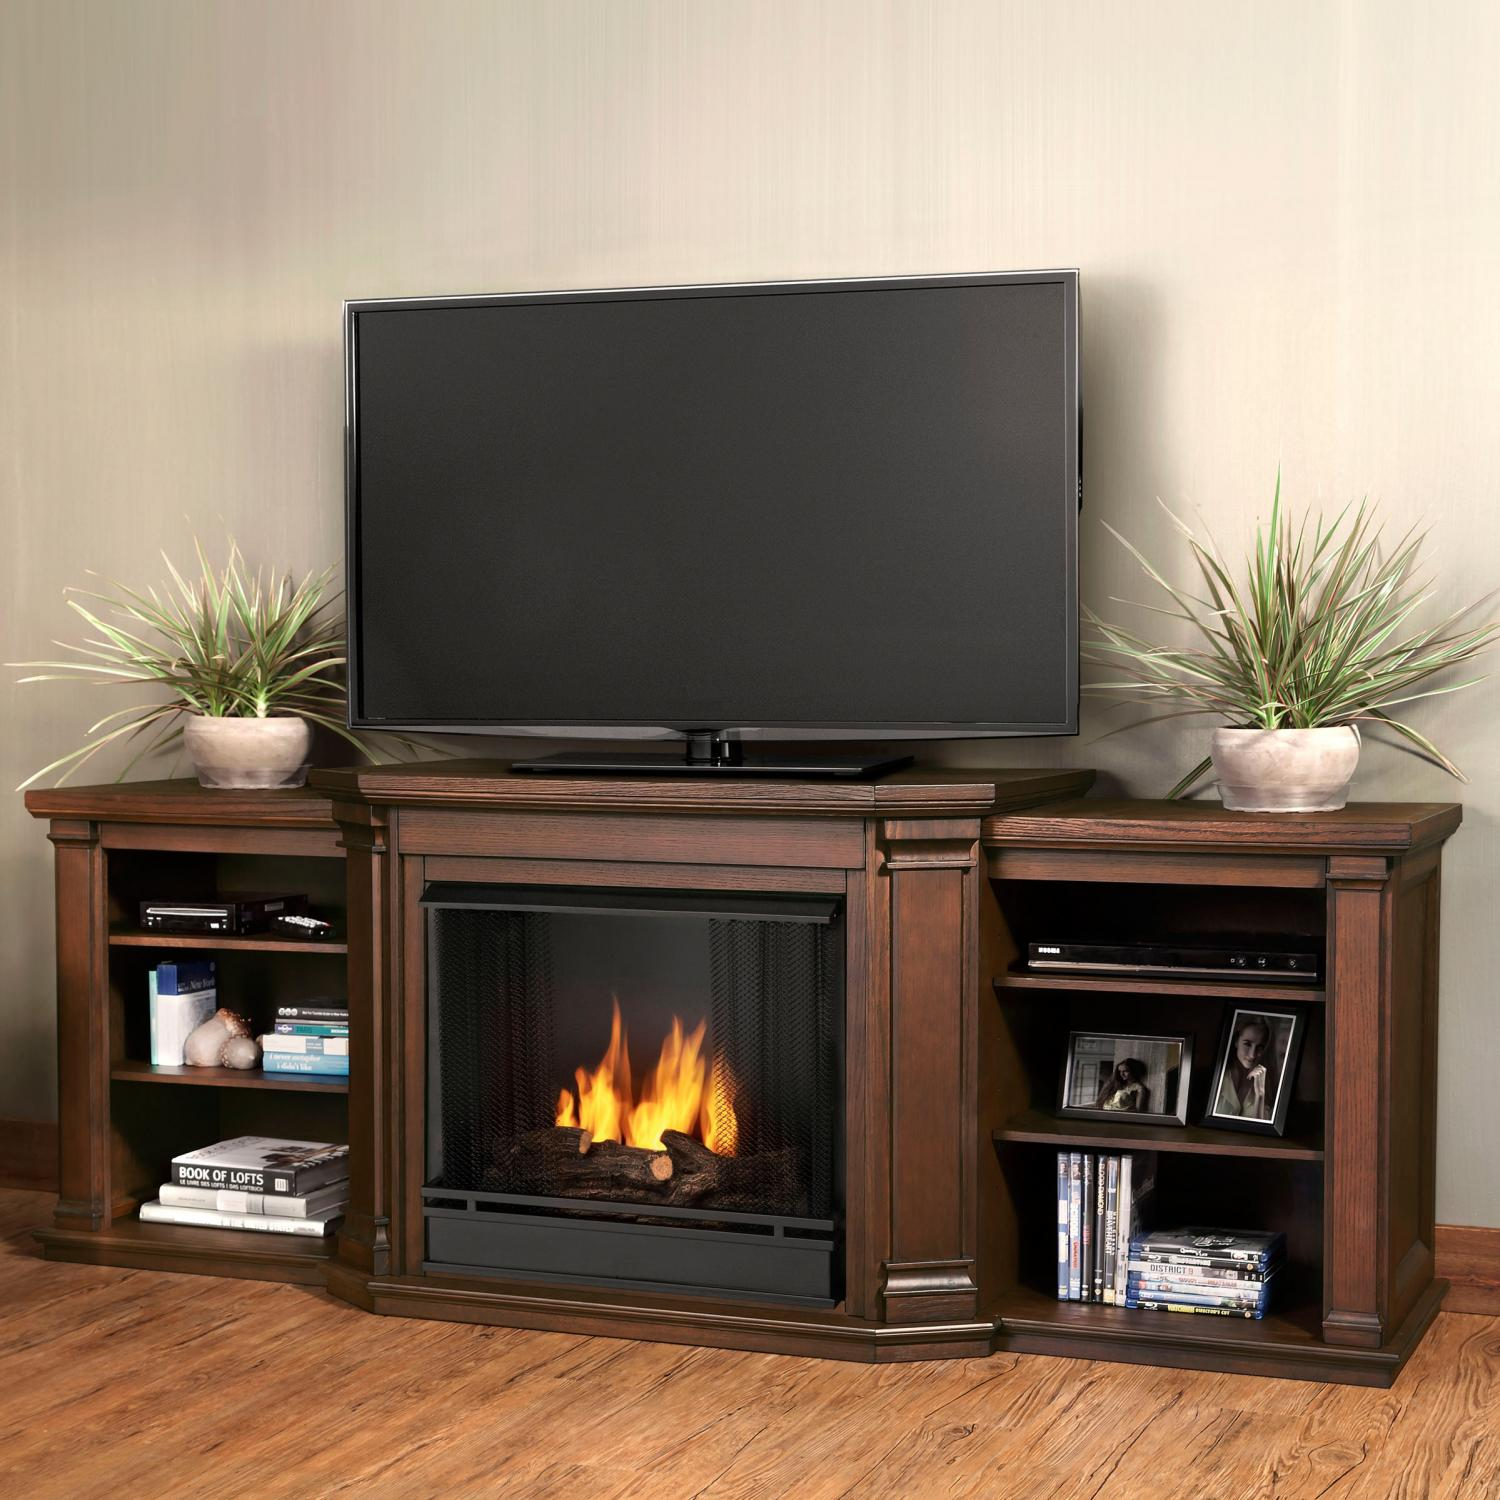 Real Flame Valmont 75-Inch Gel Fireplace Media Console - Chestnut Oak